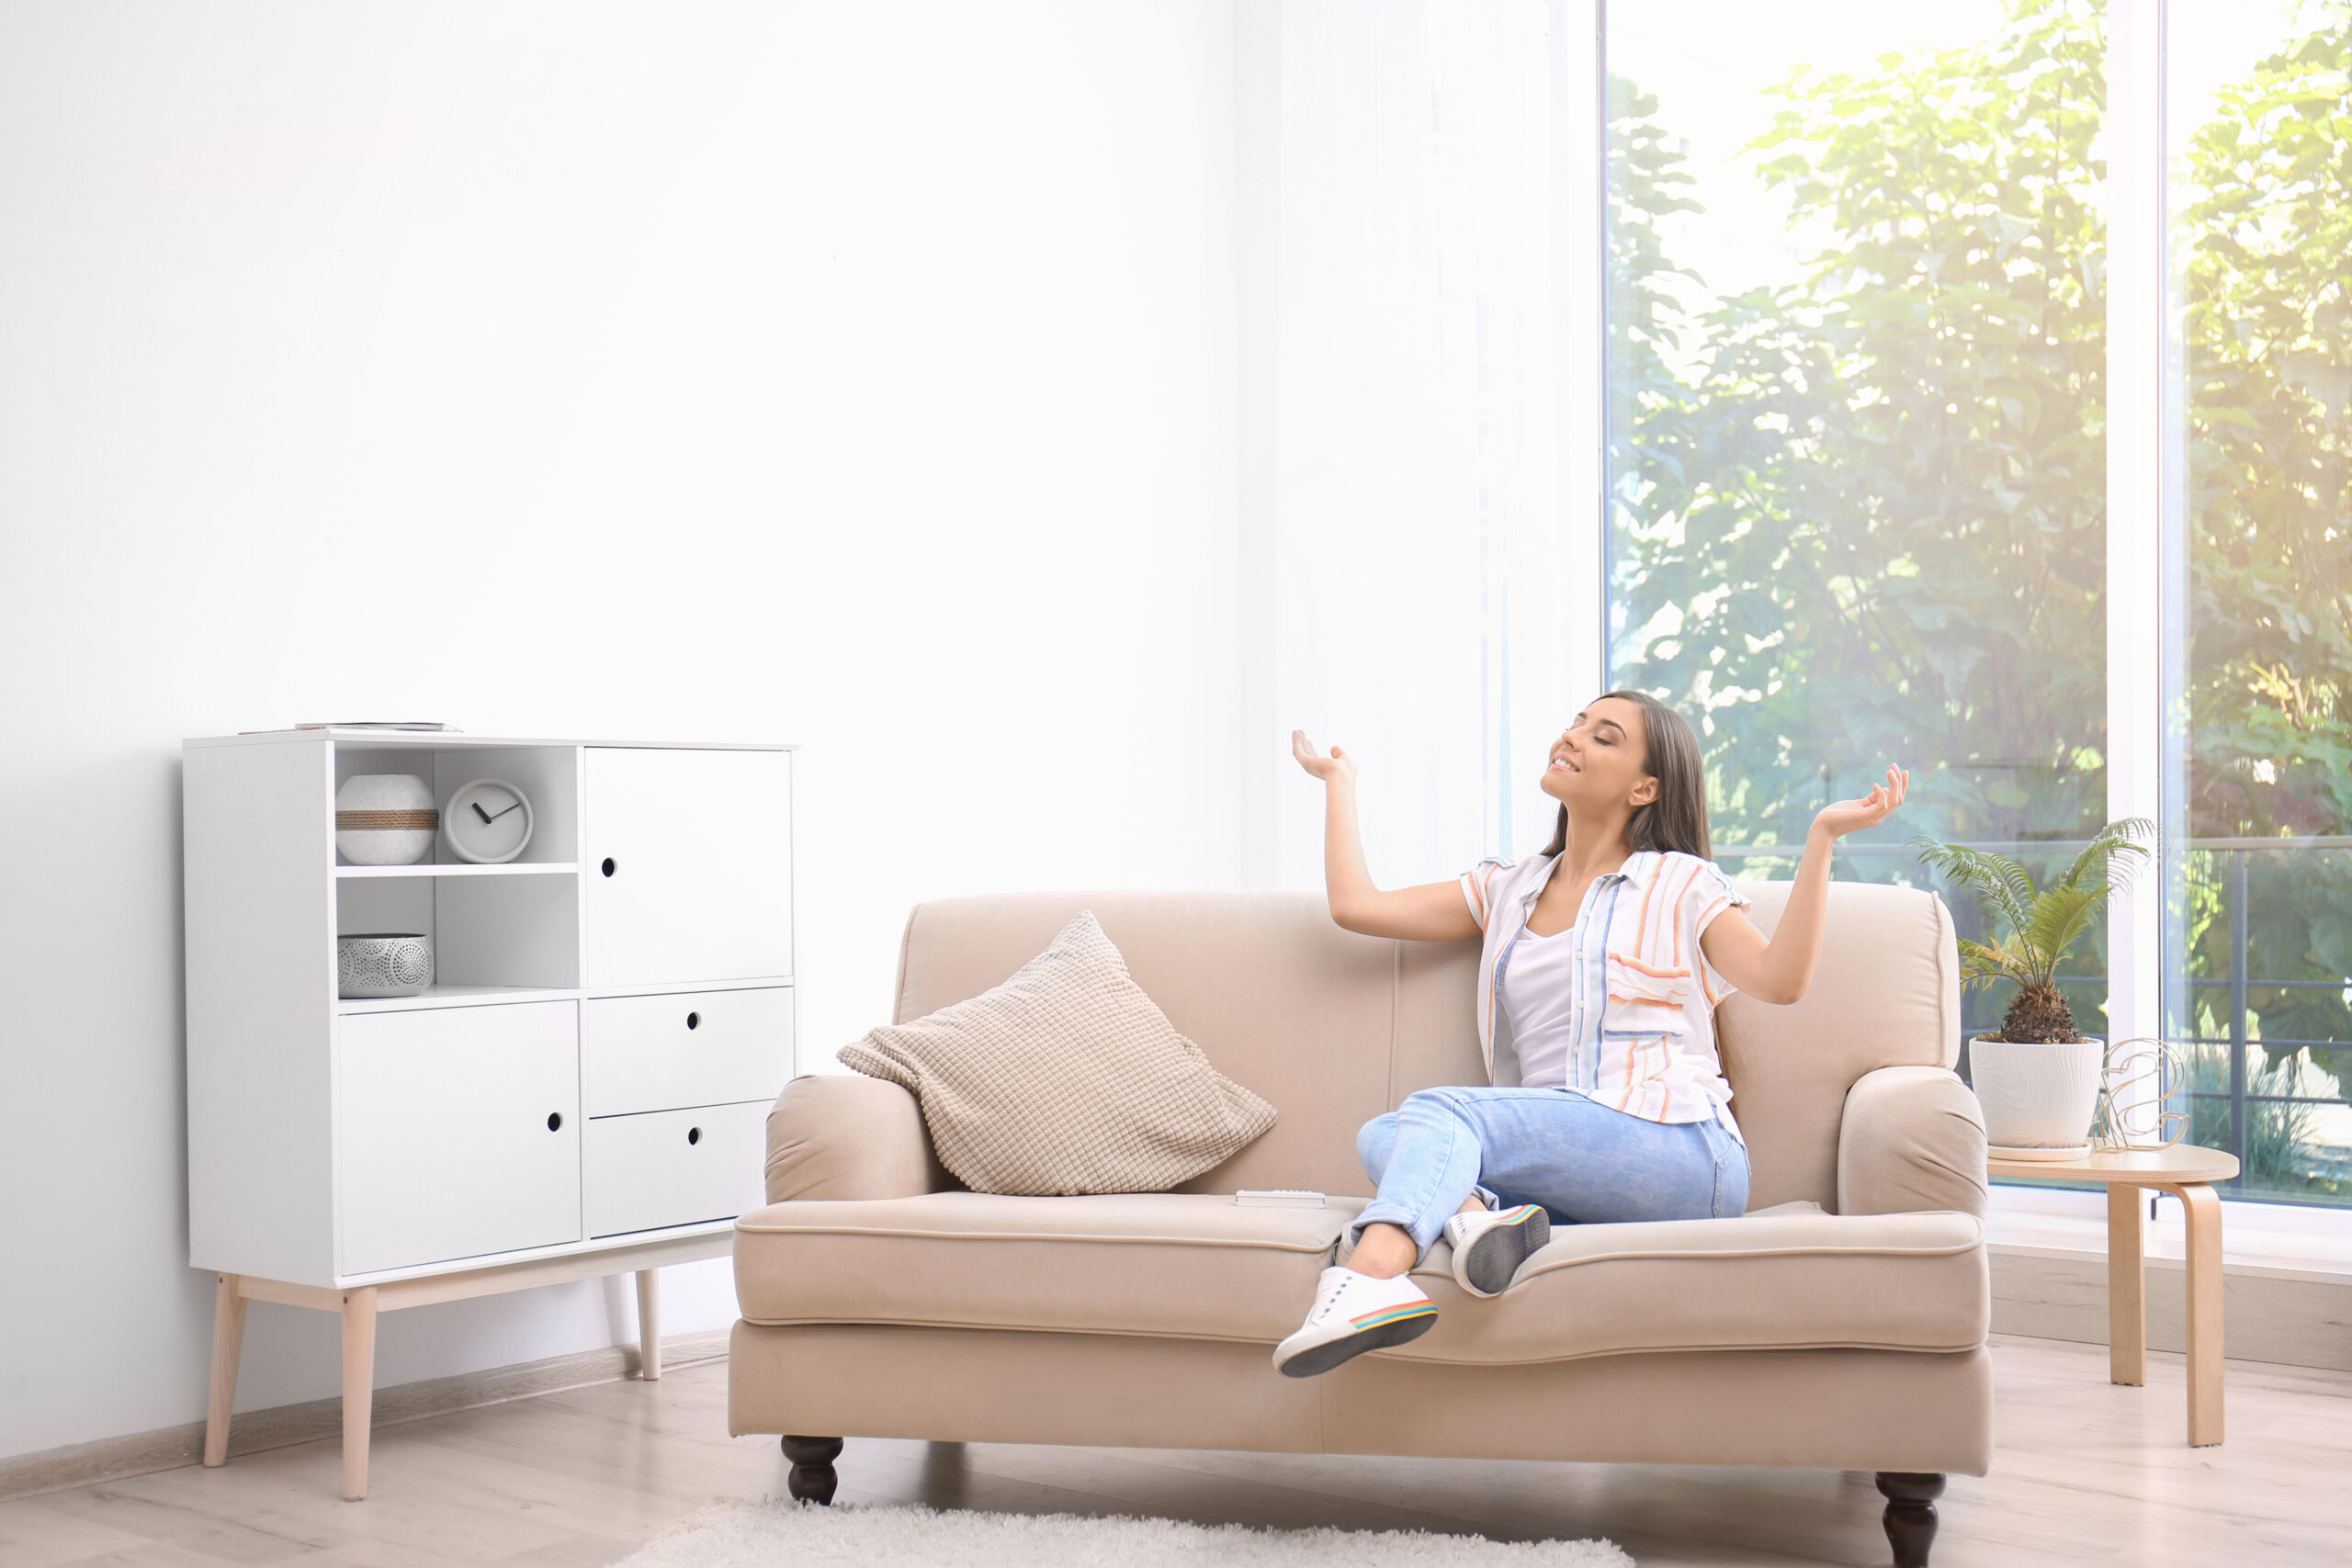 Woman on couch enjoying clean air